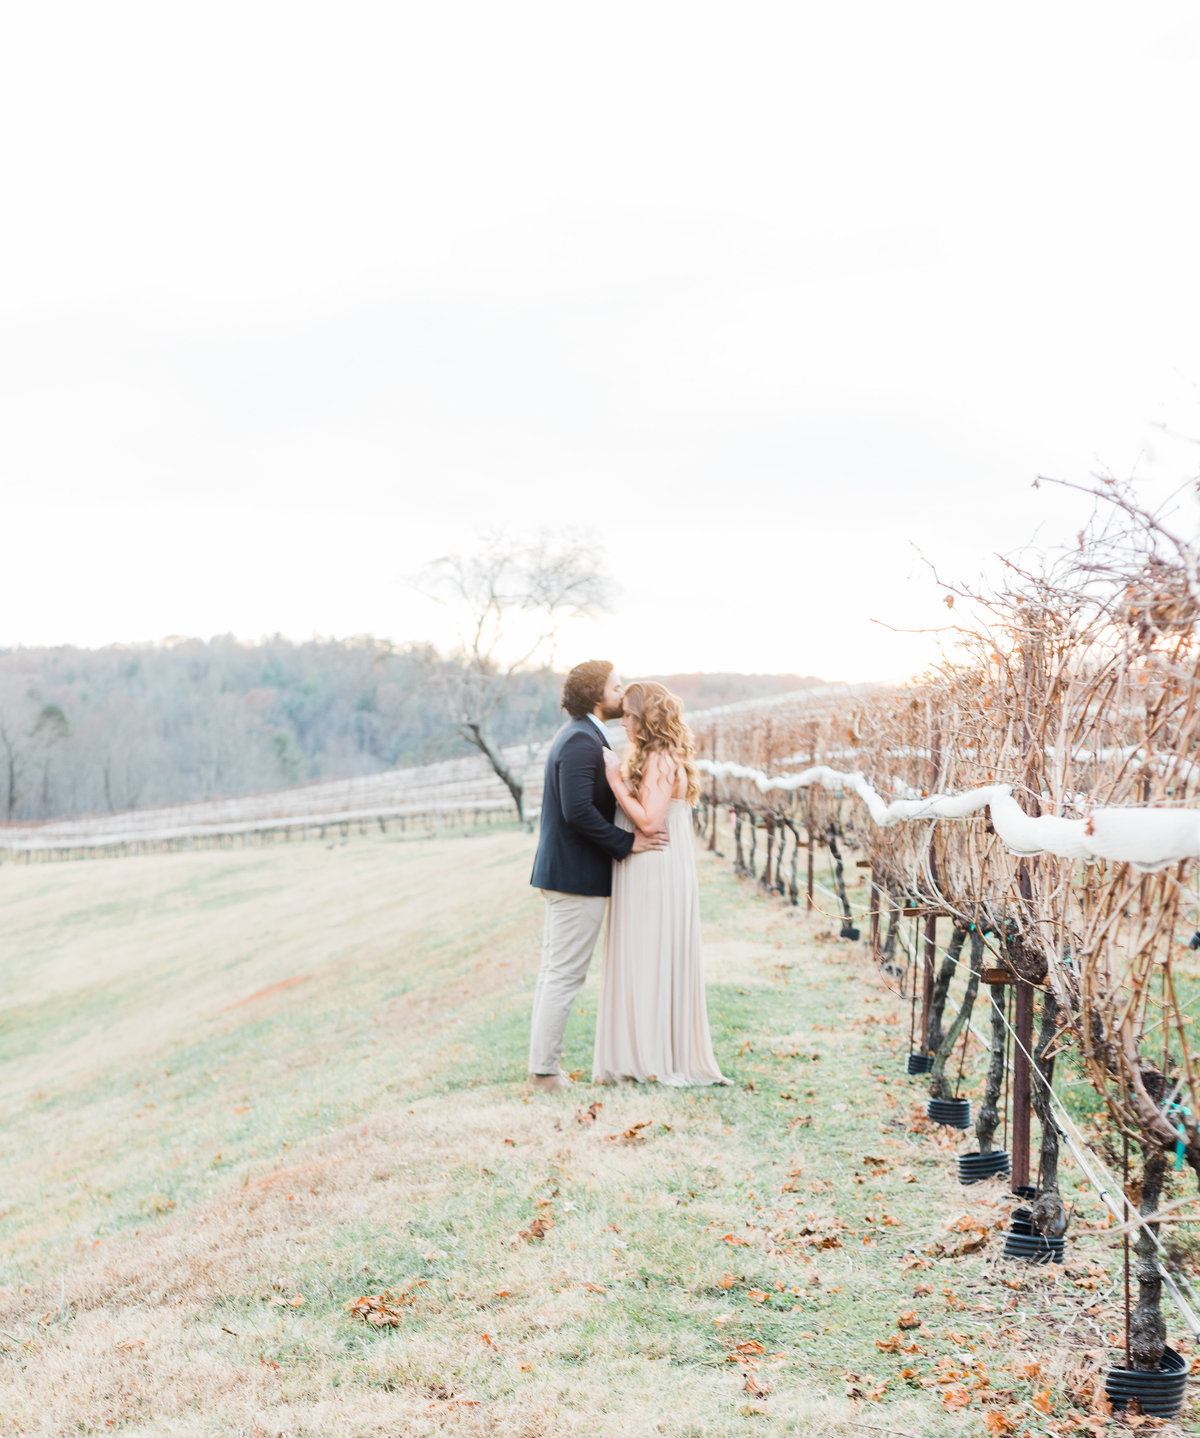 Motaluce Winery, Gainesville, GA Couple Engagement Anniversary Photography Session by Renee Jael-30